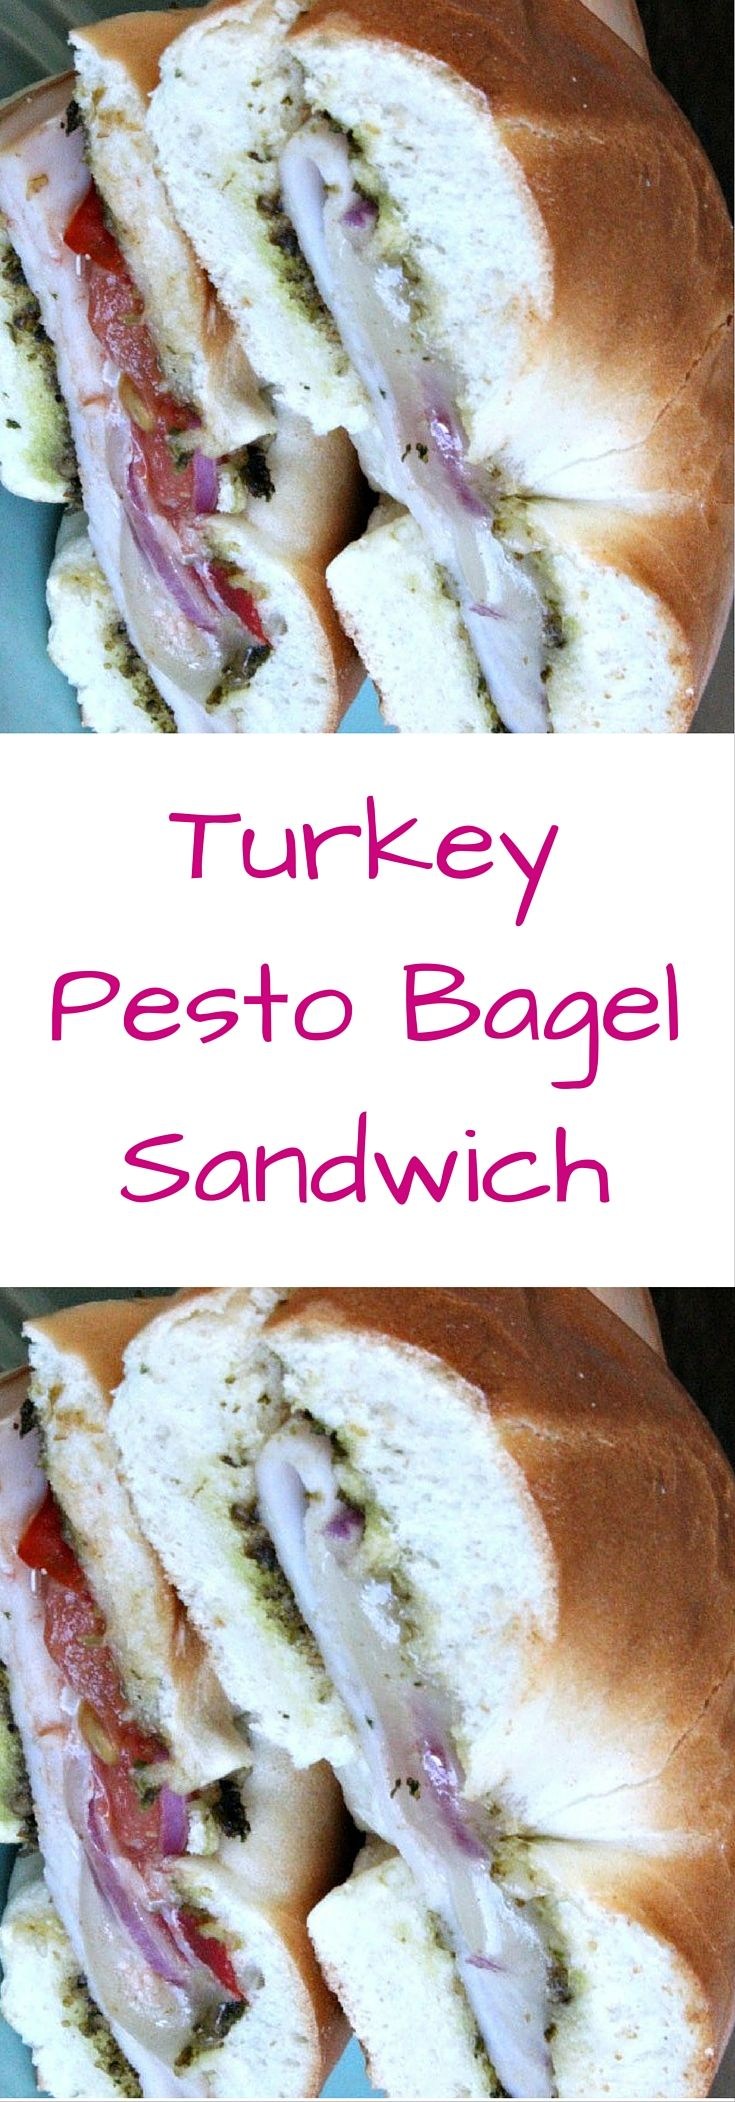 This turkey pesto mini bagel recipe is a delicious sandwich for lunch or a picnic.  The combination of the pesto sauce, fresh tomatoes, thinly sliced onions, cheese, makes this a simple yet flavorful sandwich. This filipino lumpia is crunchy, delicious, and easy to make. Click here for this recipe or pin to save for later.